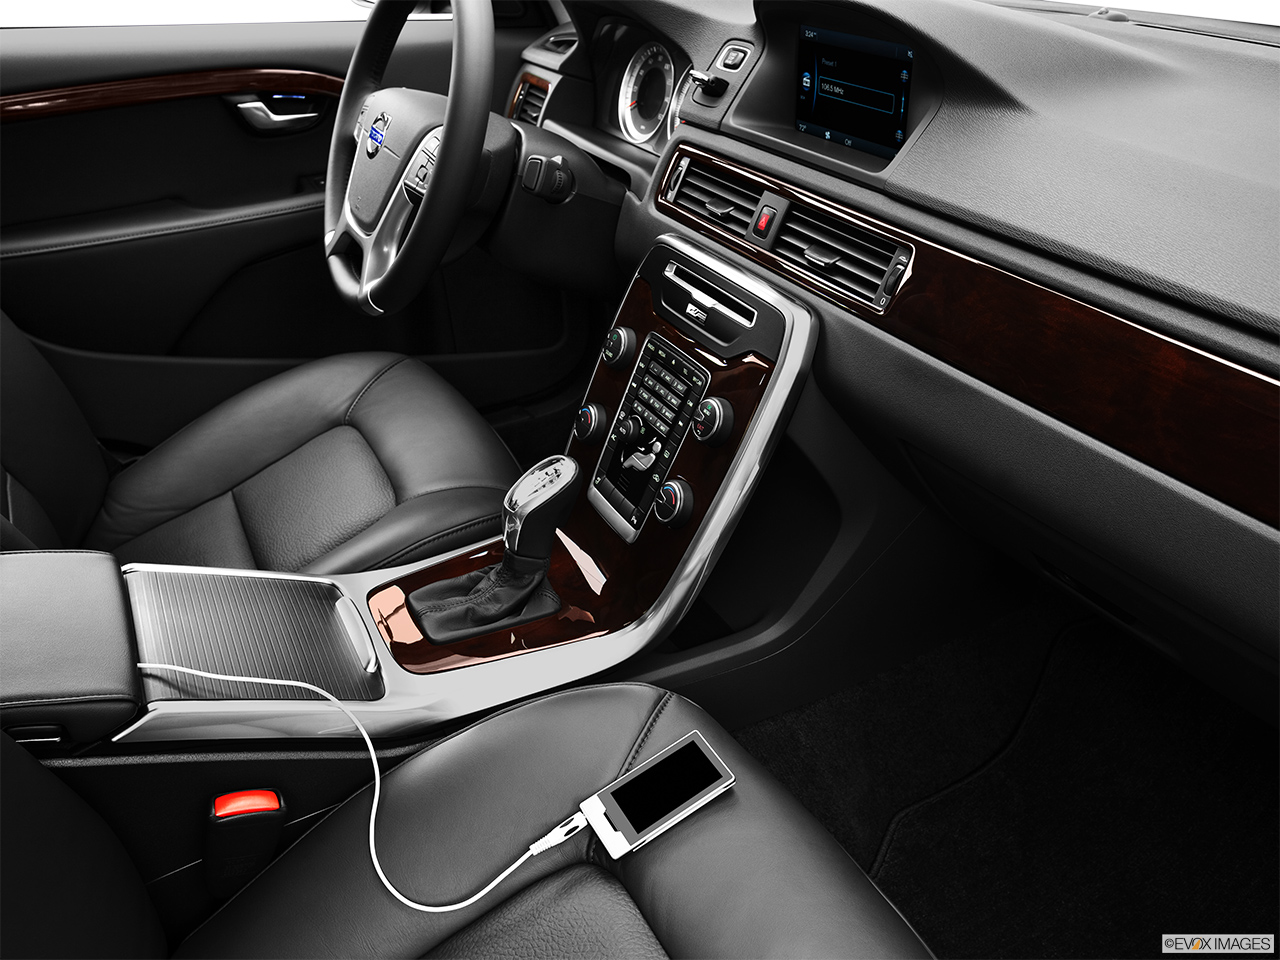 2013 Volvo S80 3.2 Platinum Zune and auxiliary jack